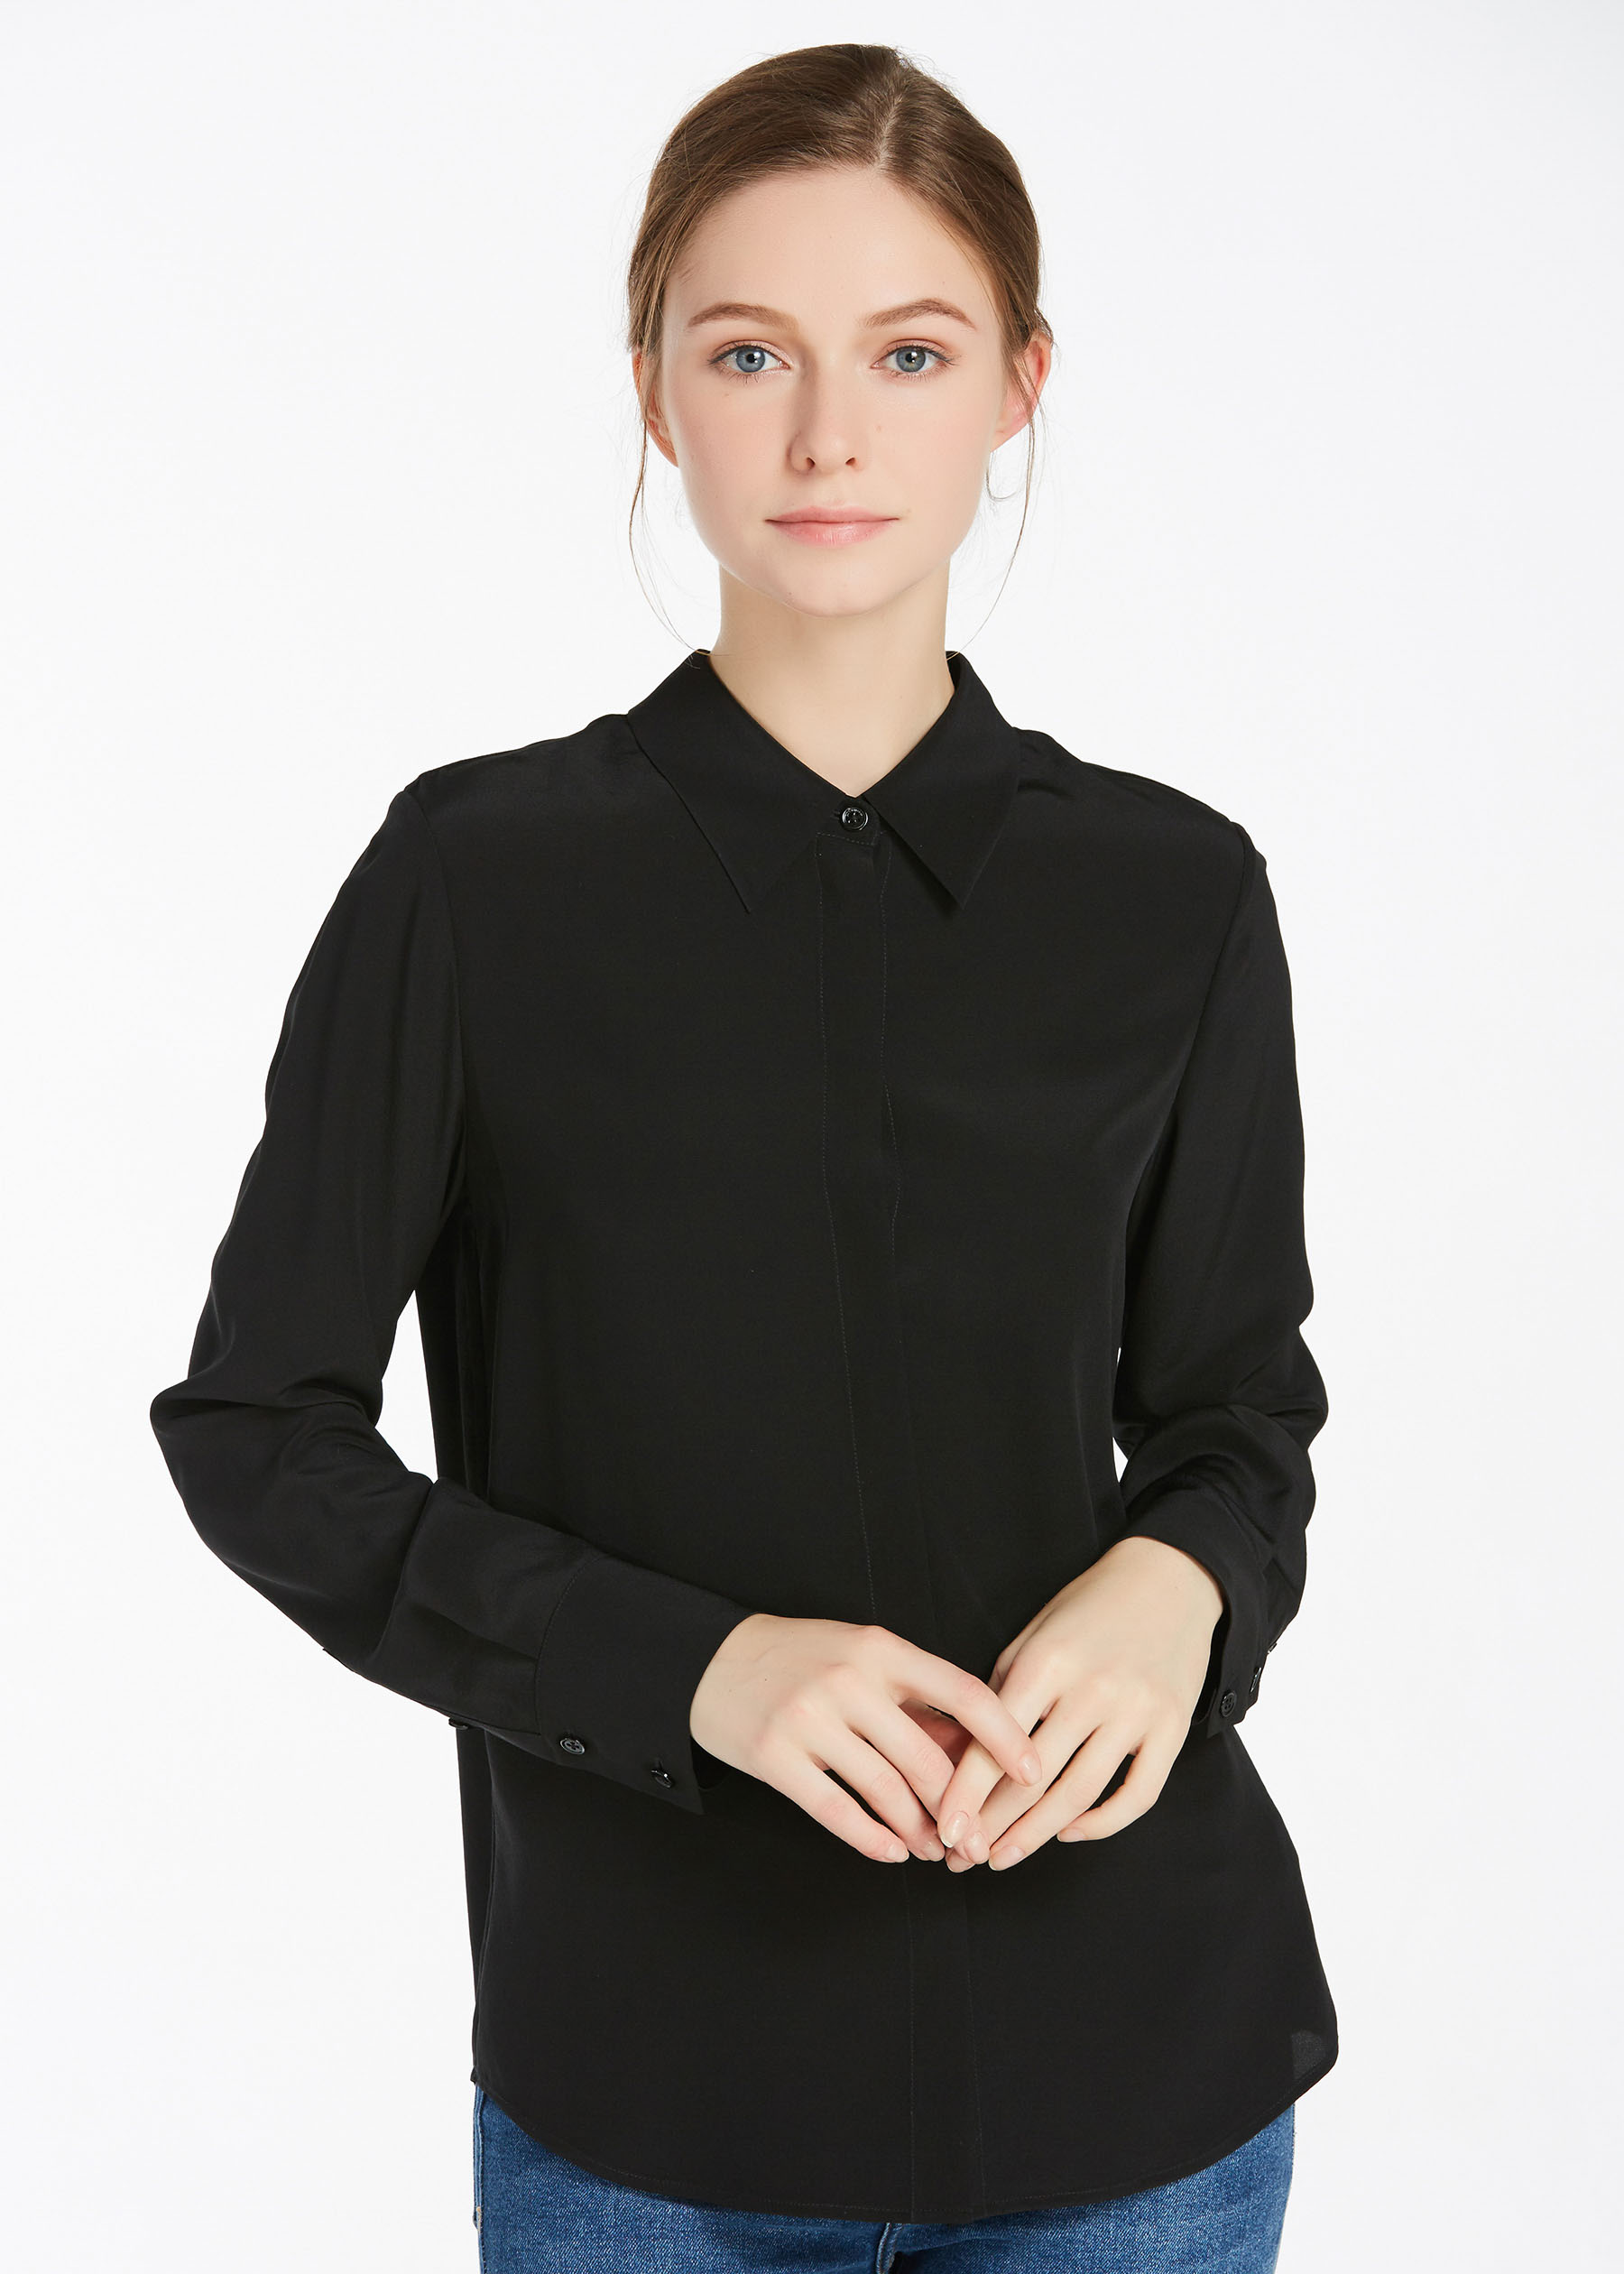 18mm wrinkle free basic silk shirt hot sale on lilysilk Wrinkle free shirts for women